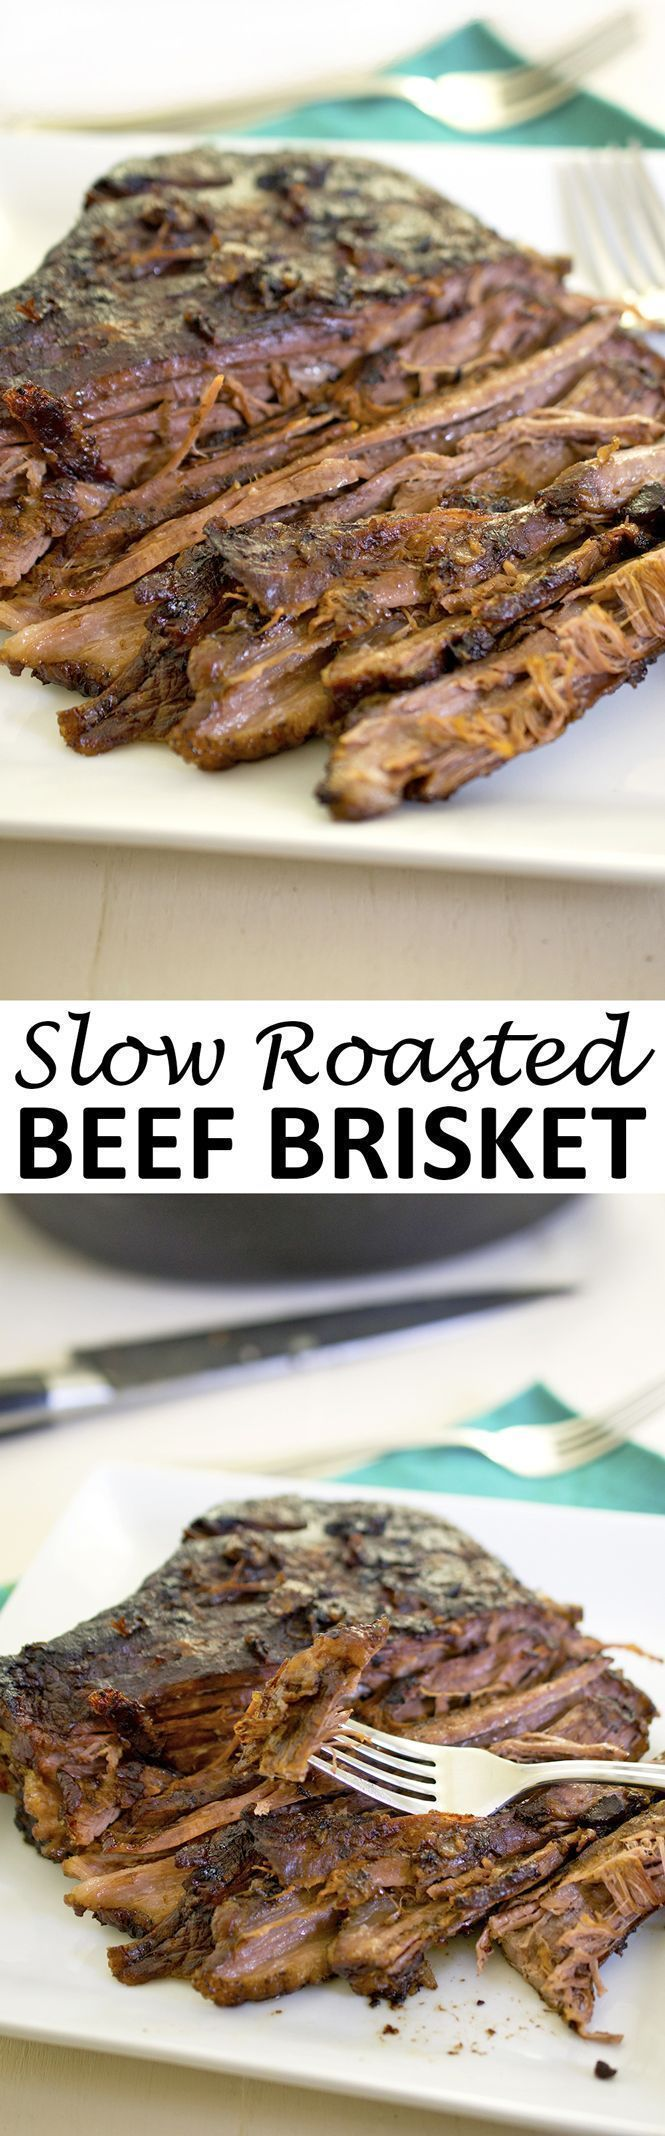 Oven Roasted Beef Brisket smothered with roasted vegetables, red wine, and beef stock. A perfect make ahead Sunday dinner. | chefsavvy.com #recipe #slow #roasted #beef #brisket